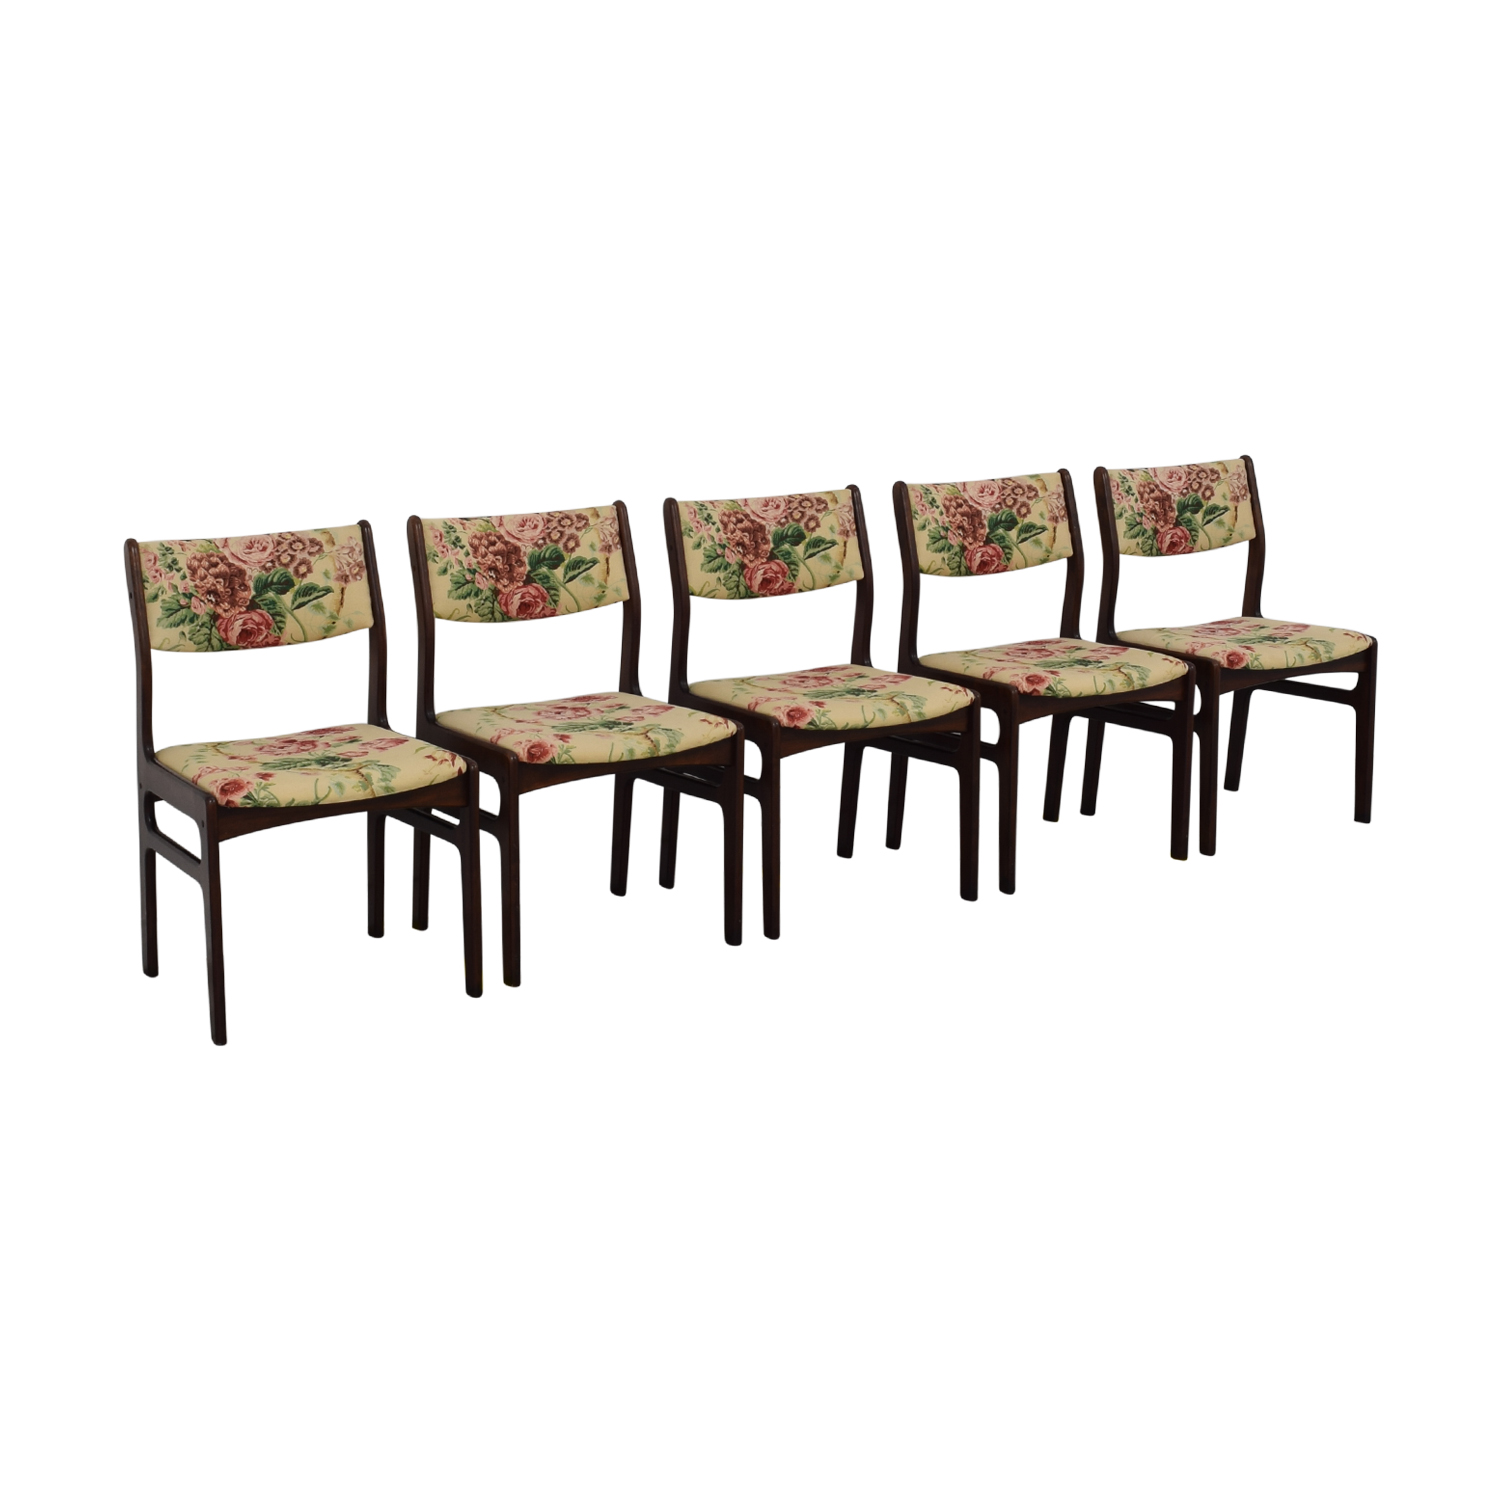 Dyrlund Dyrlund Danish Modern Dining Chairs multi